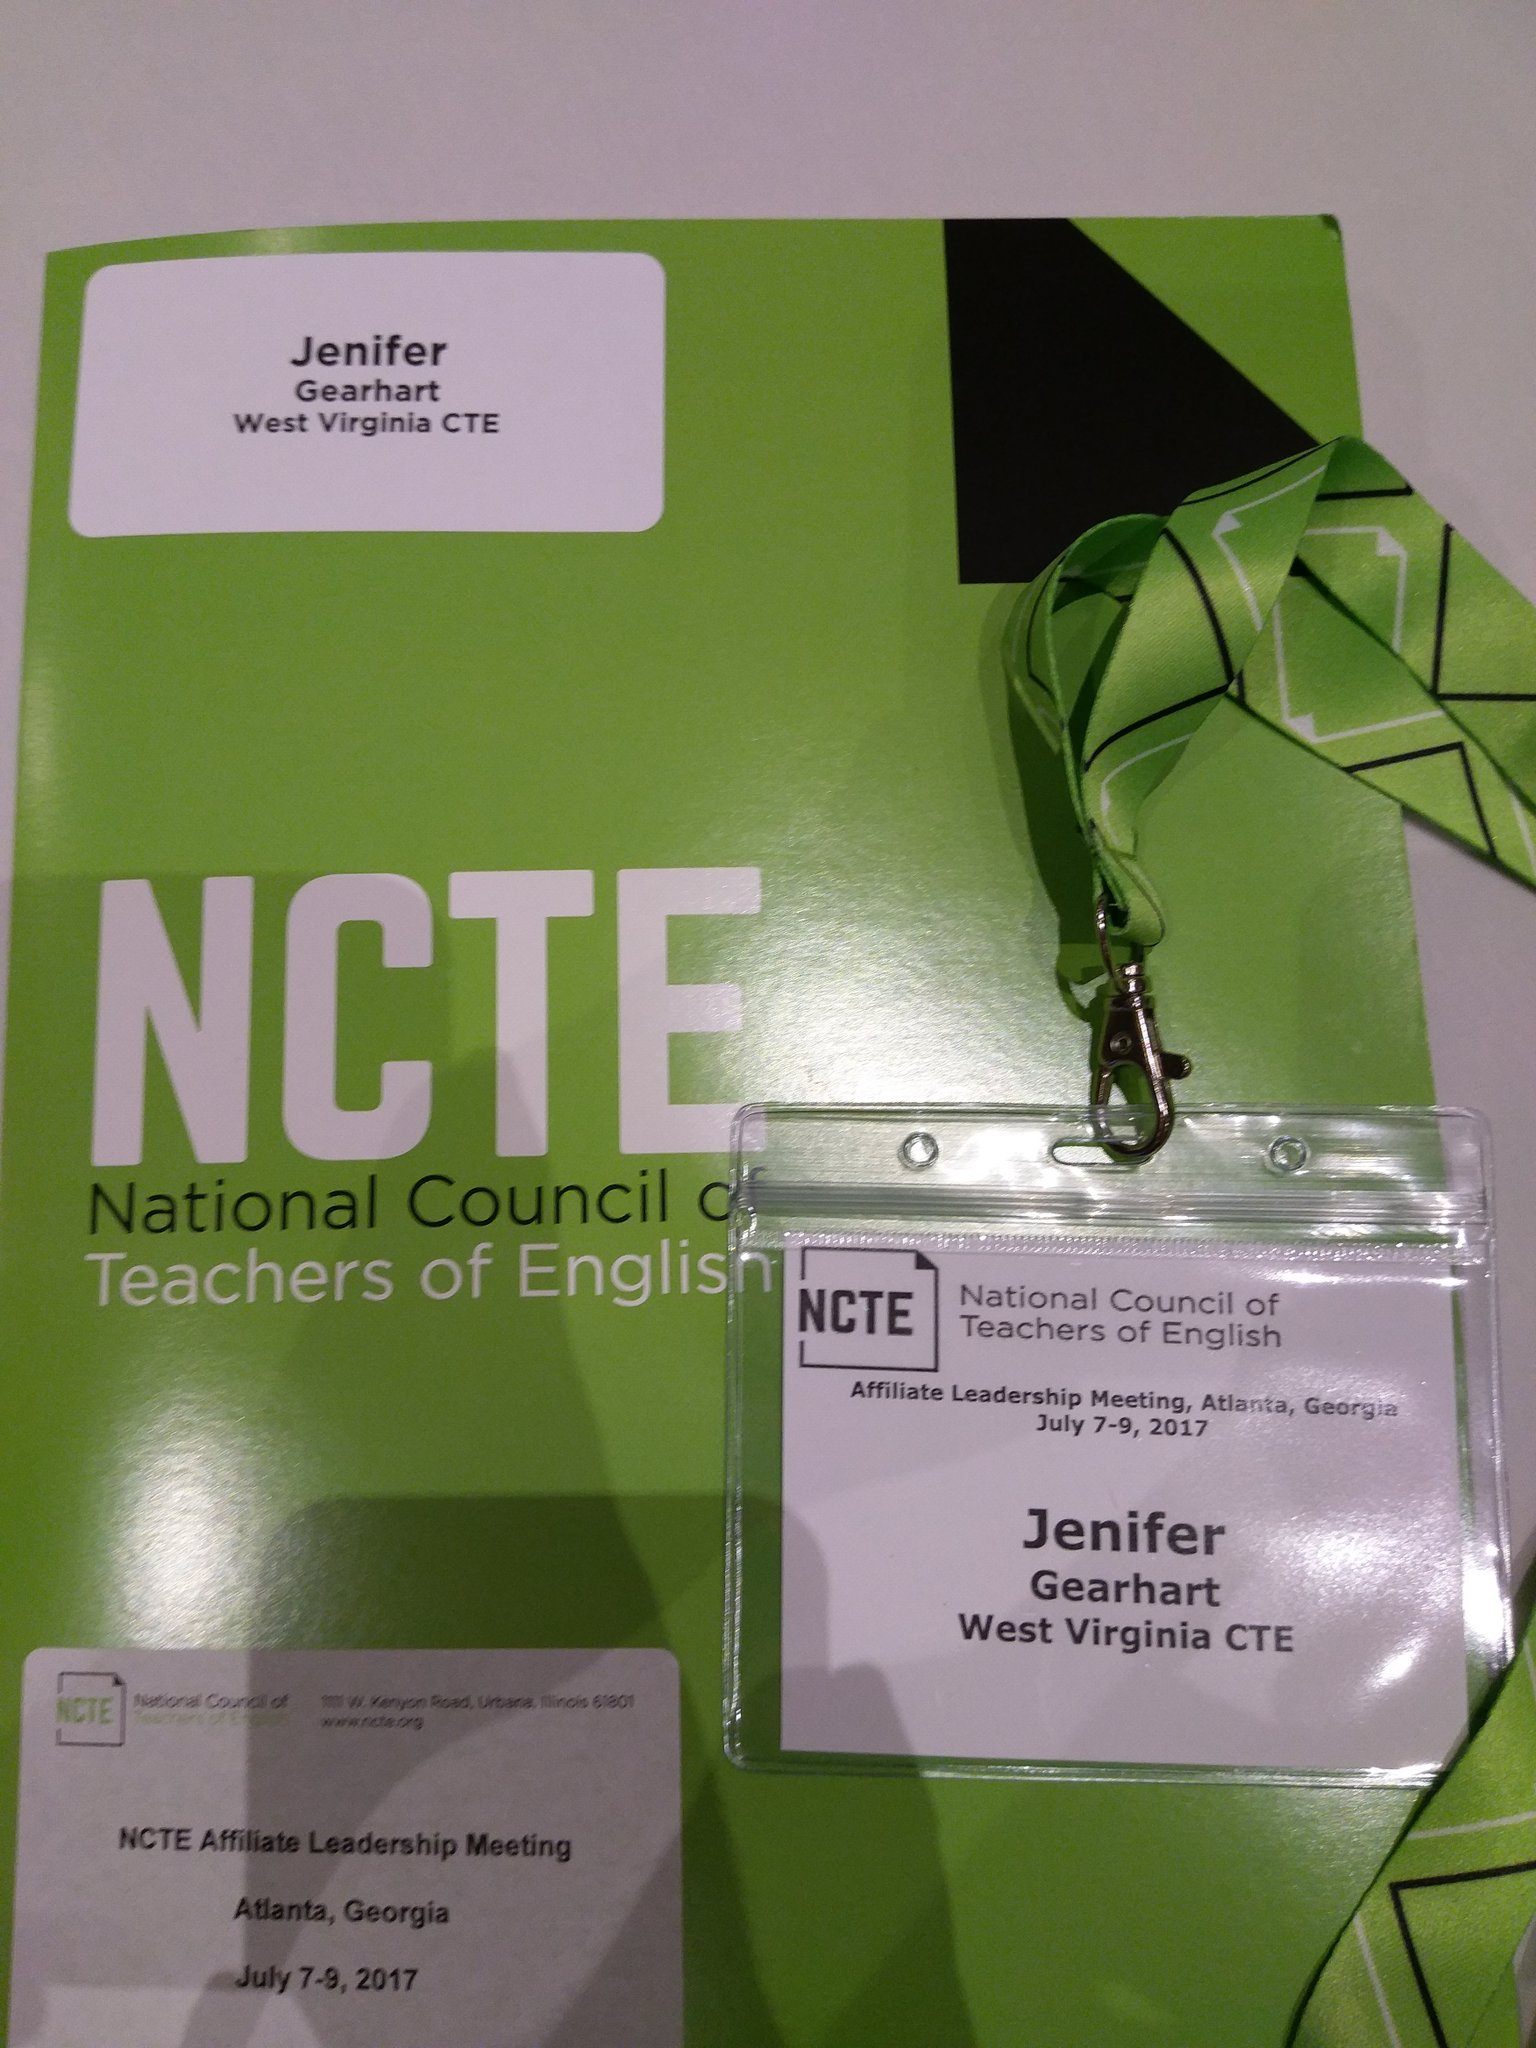 @wvcte Ready for some learning and networking #NCTEaffiliate #teachersworking https://t.co/gtmcB8fACT